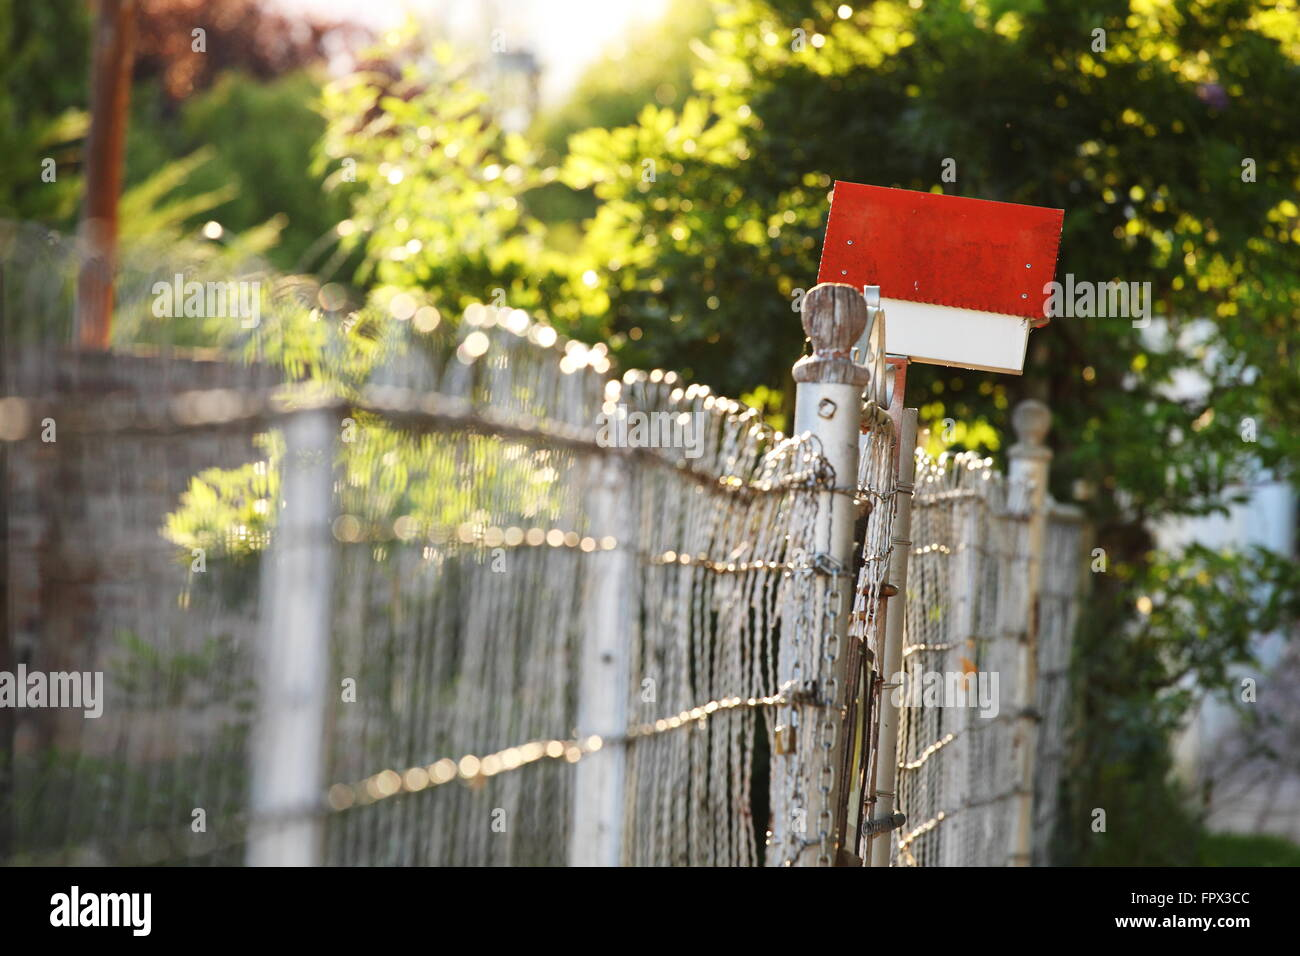 Red postbox on a rustic metal fence - Stock Image